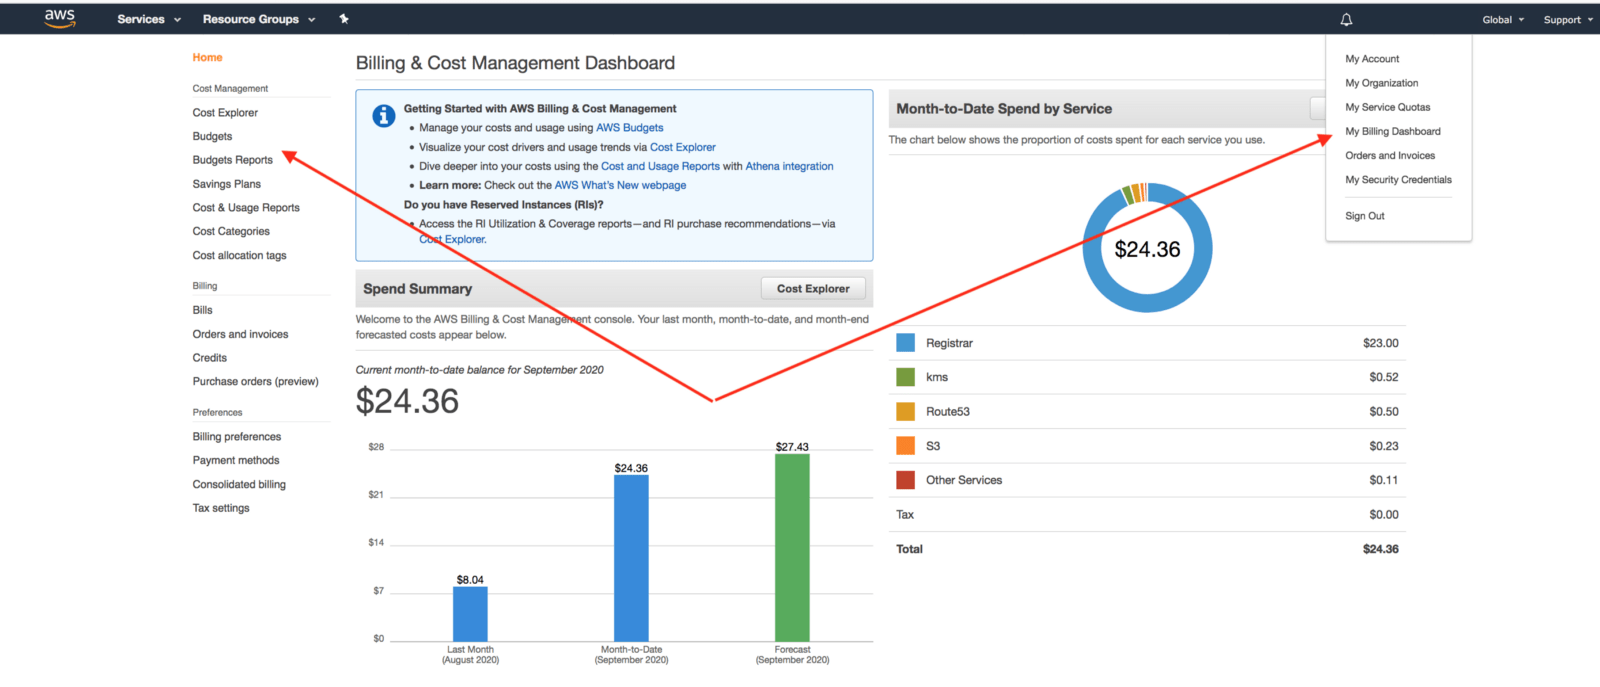 The AWS My Billing Dashboard and AWS Billing and Cost Management Dashboard